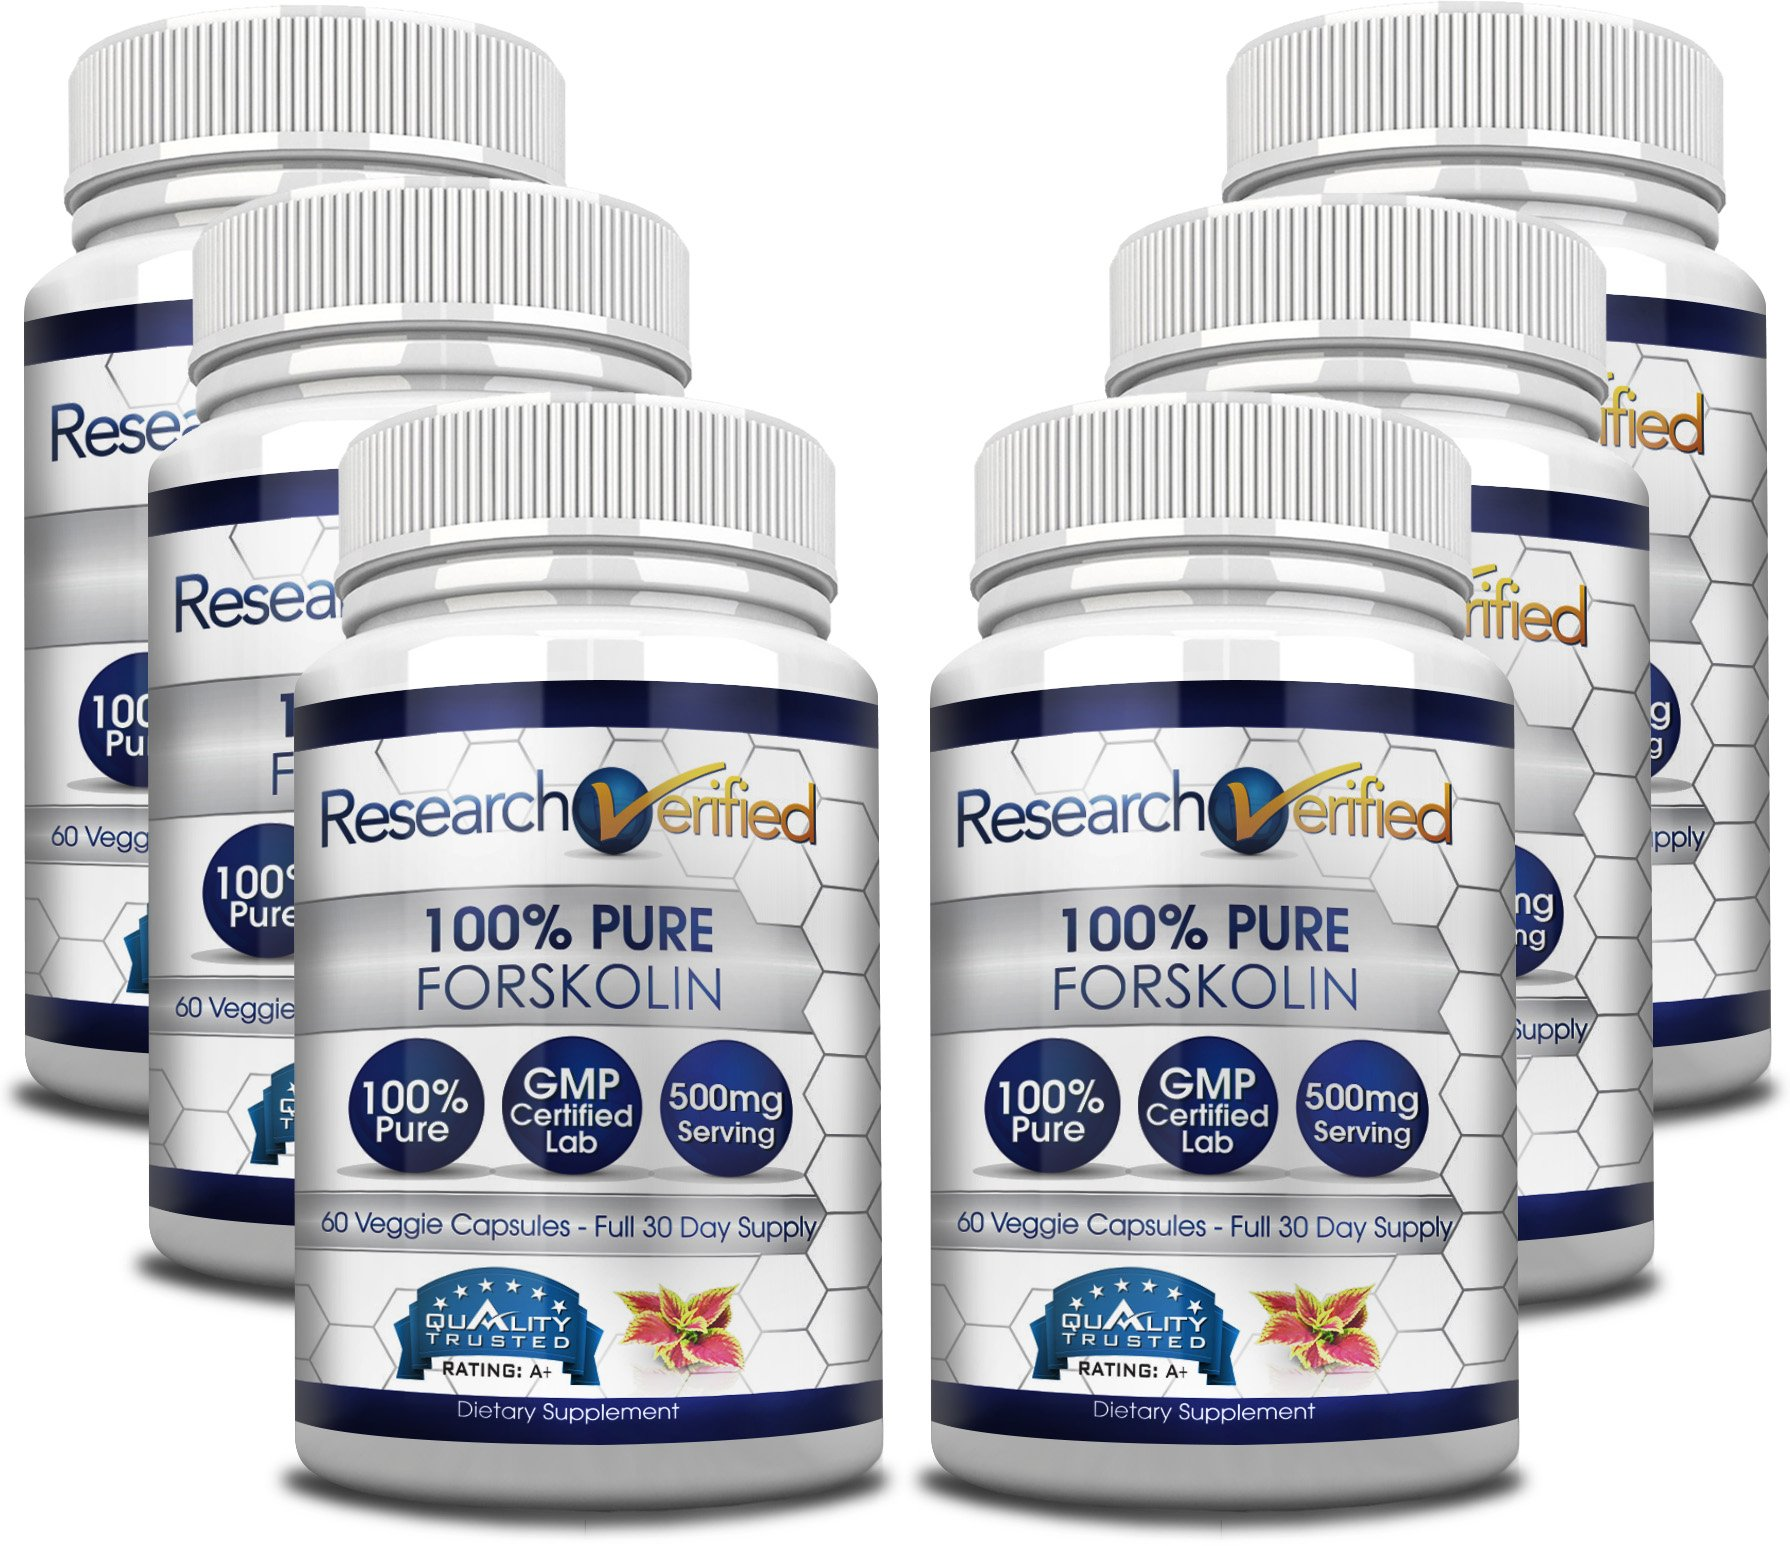 Research Verified Forskolin - 360 Capsules (Six Month Supply) - 20% Standardized Forskolin - 500mg/day - 365 Day 100% Money Back Guarantee - Try Risk Free for Fast and Easy Weight Loss